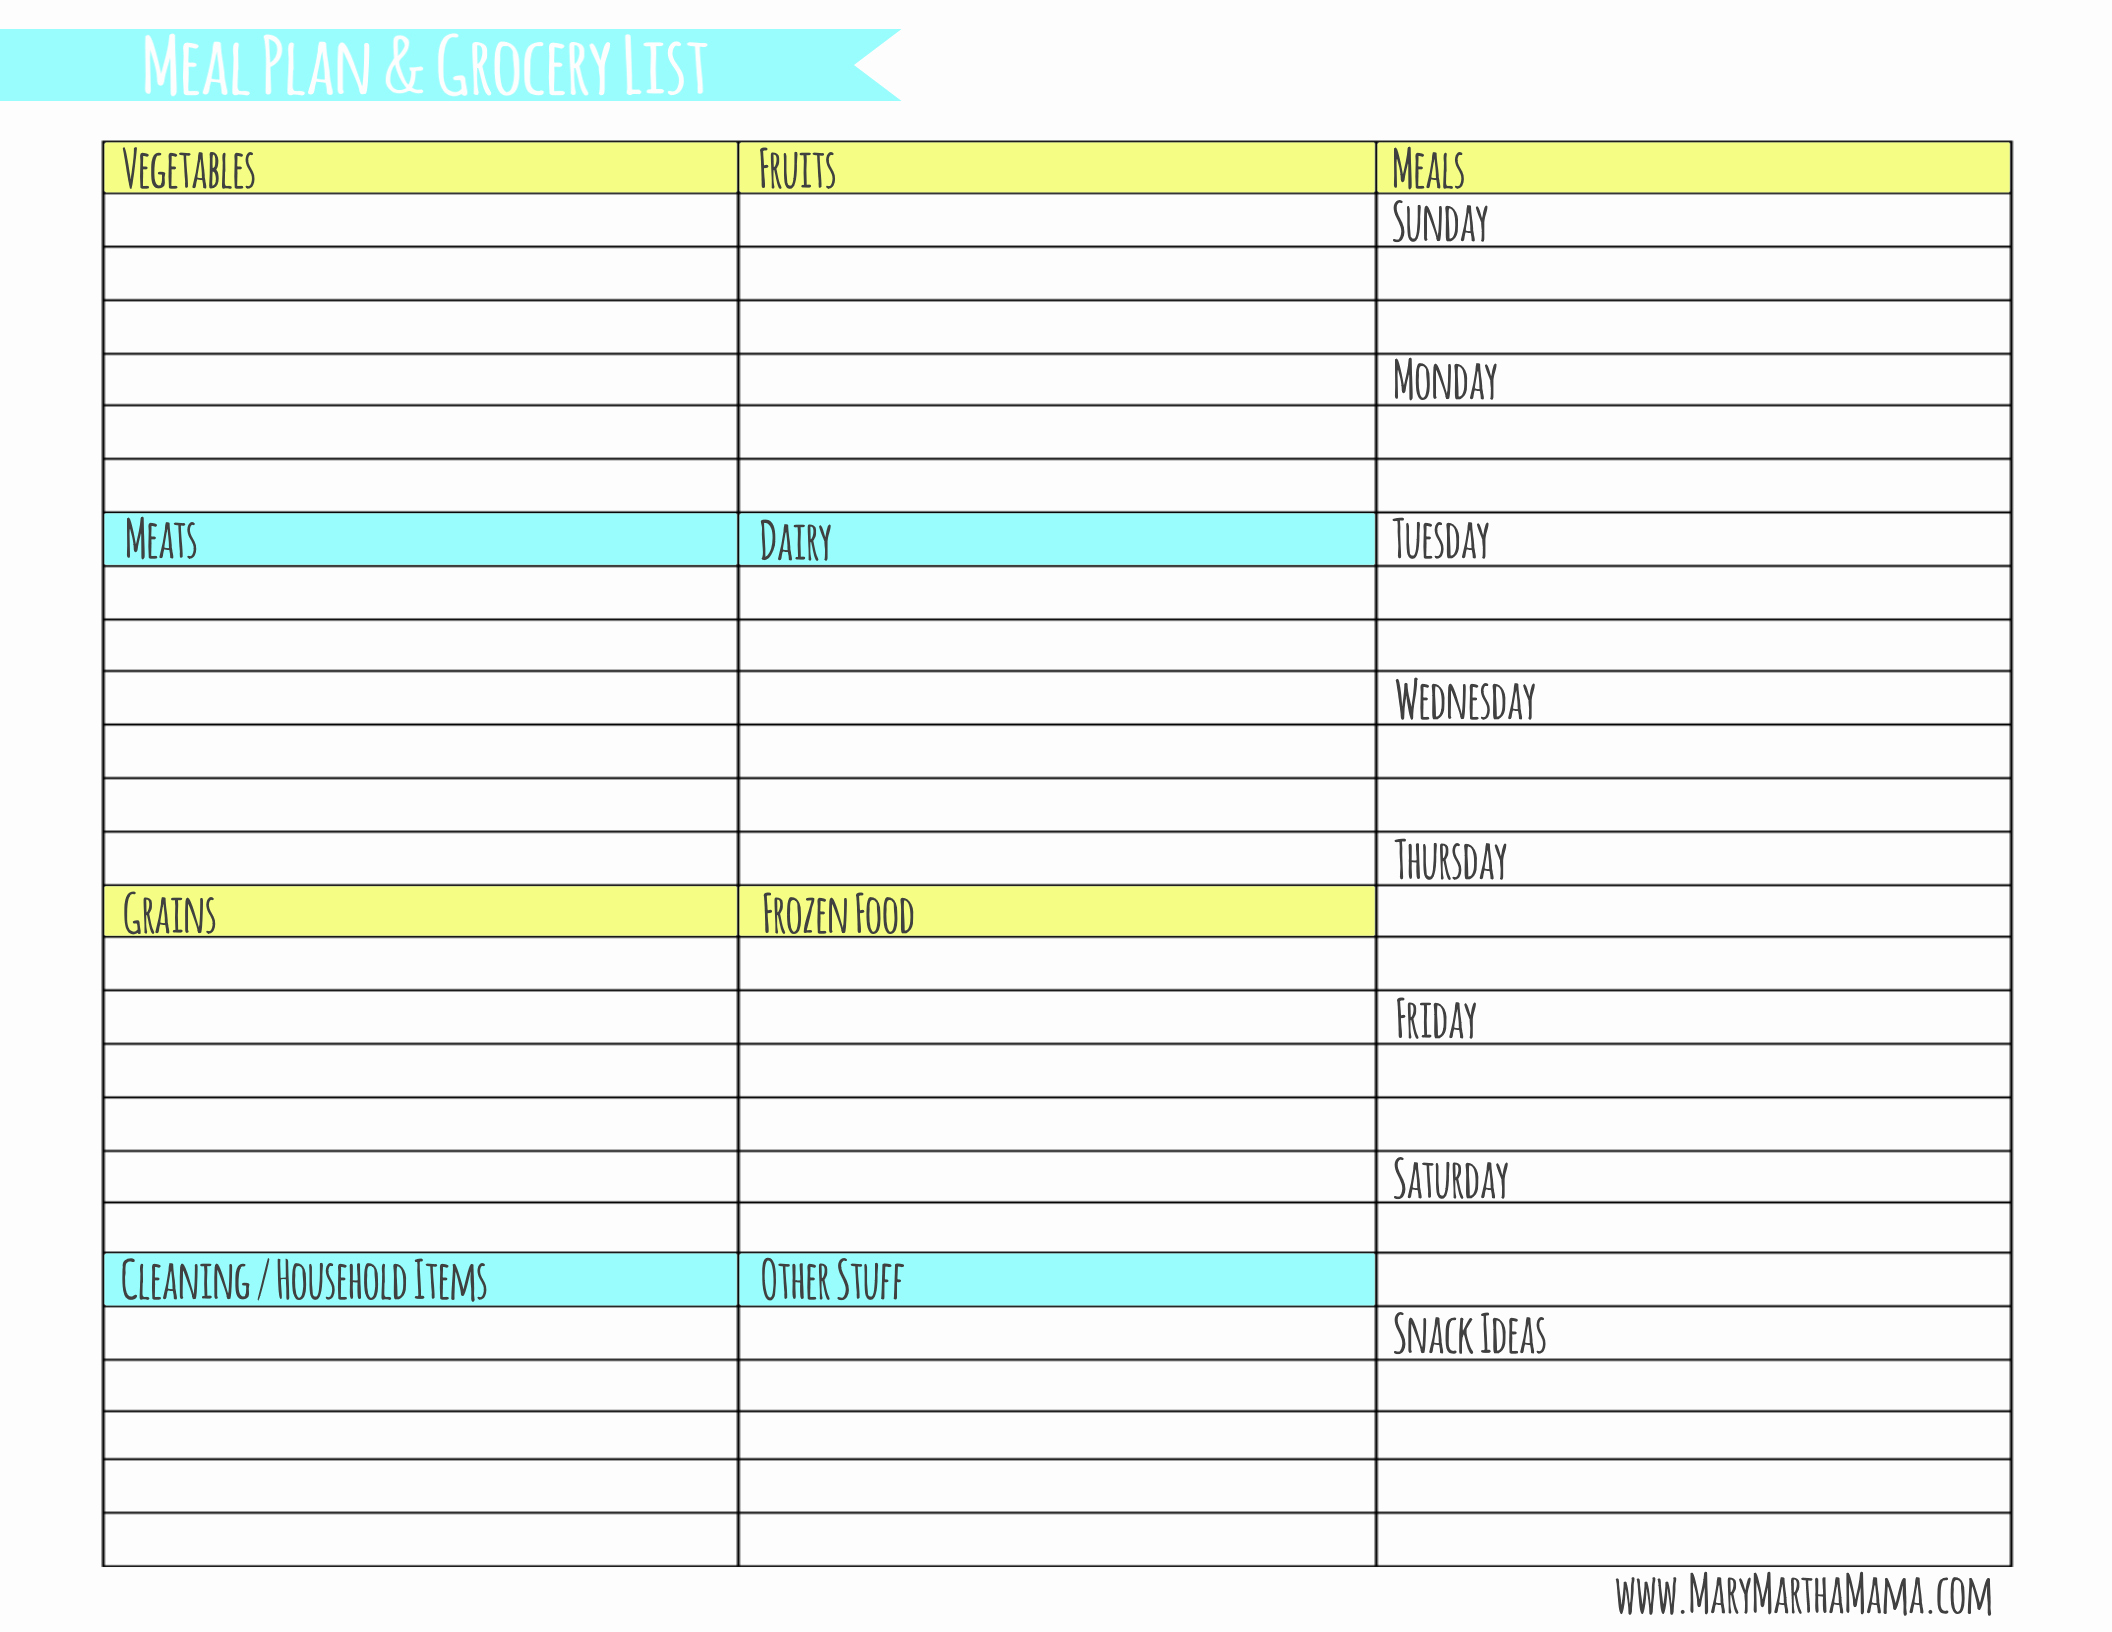 Weekly Meal Planner Template with Grocery List – Mary